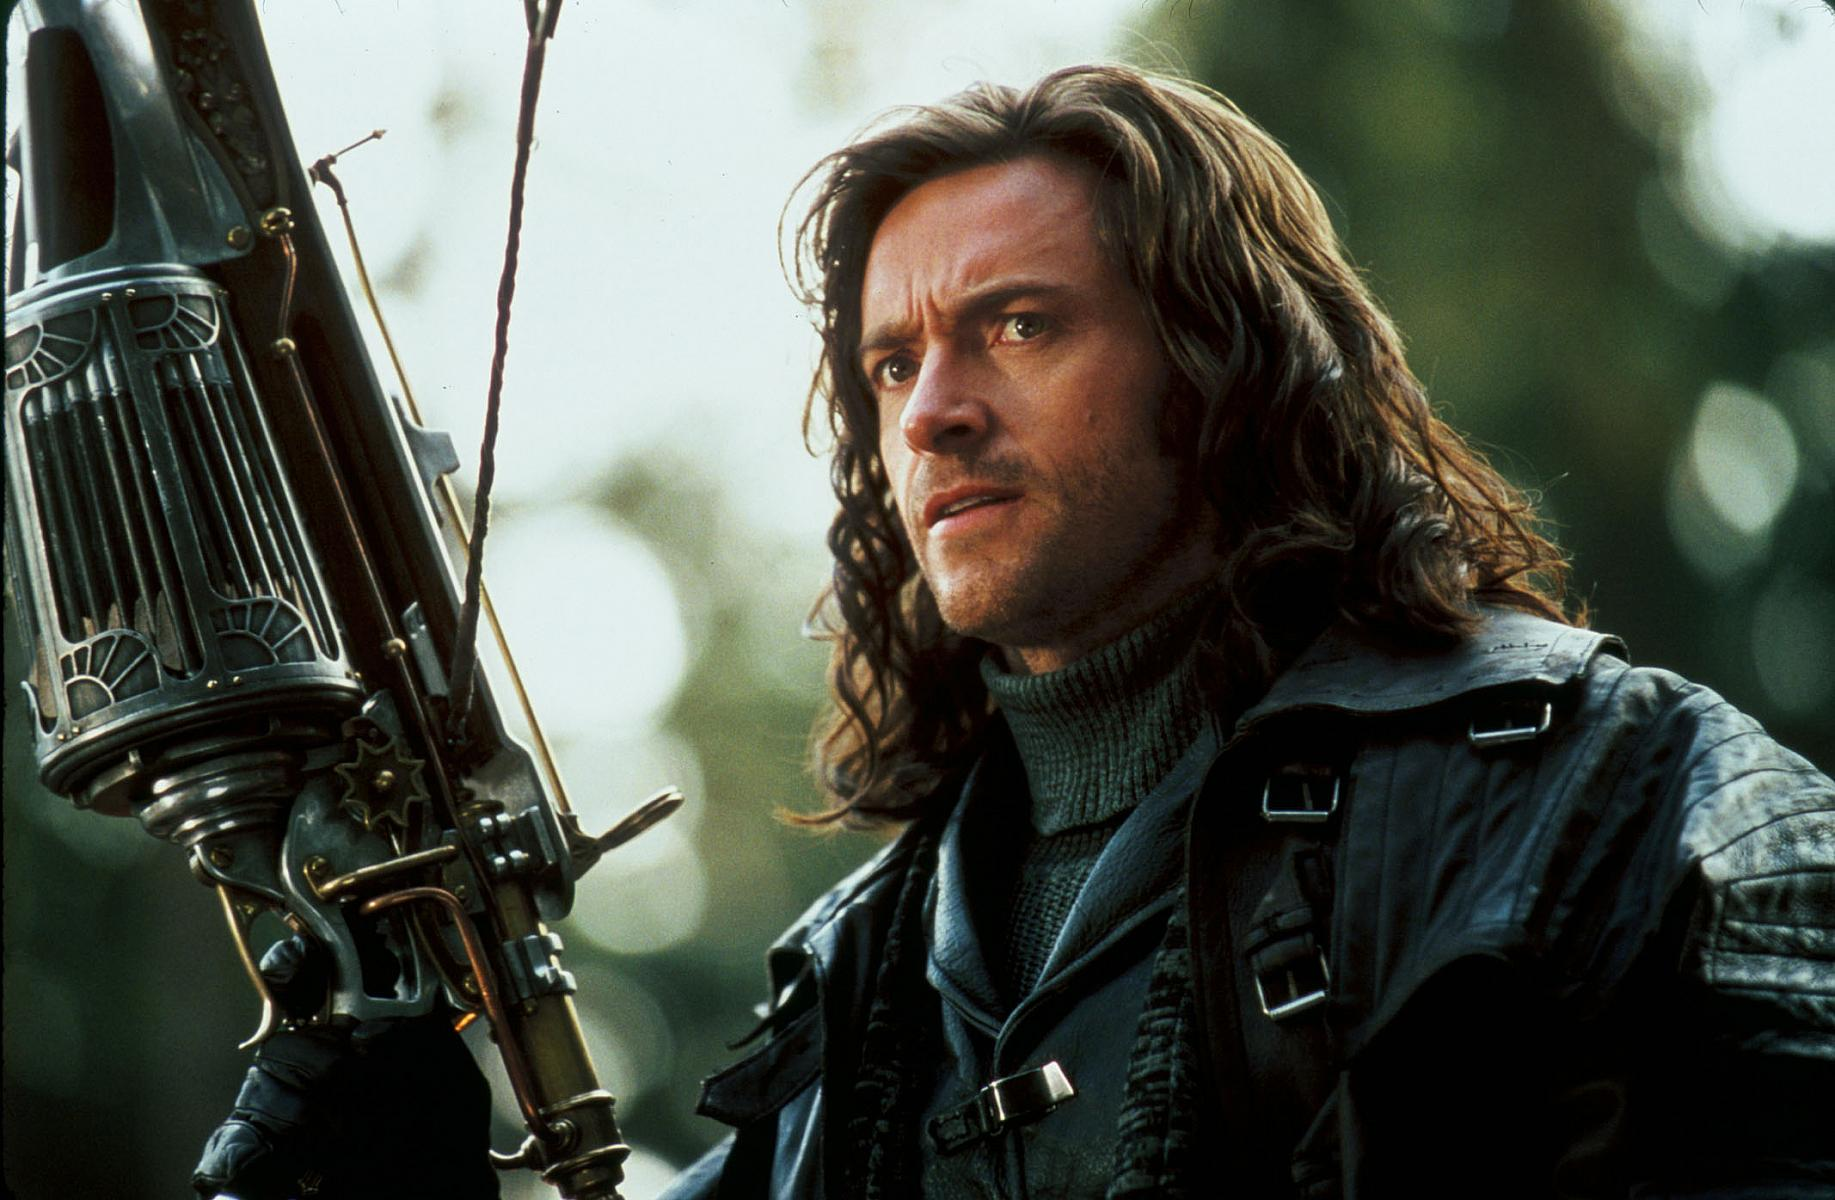 Hugh Jackman as Van Helsing (2004)